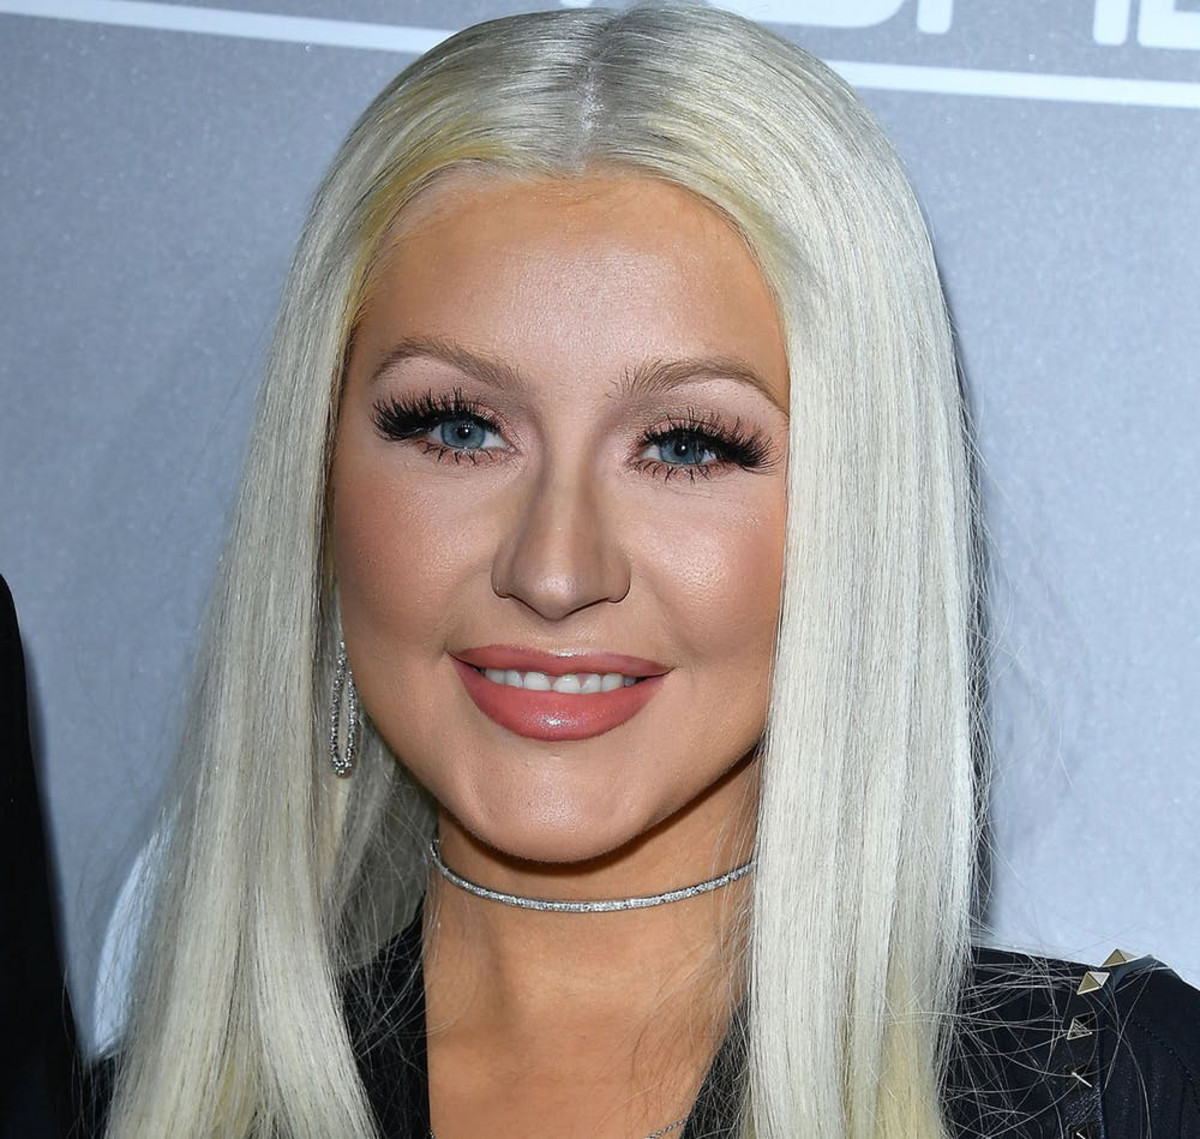 Christina Aguilera in late 2016